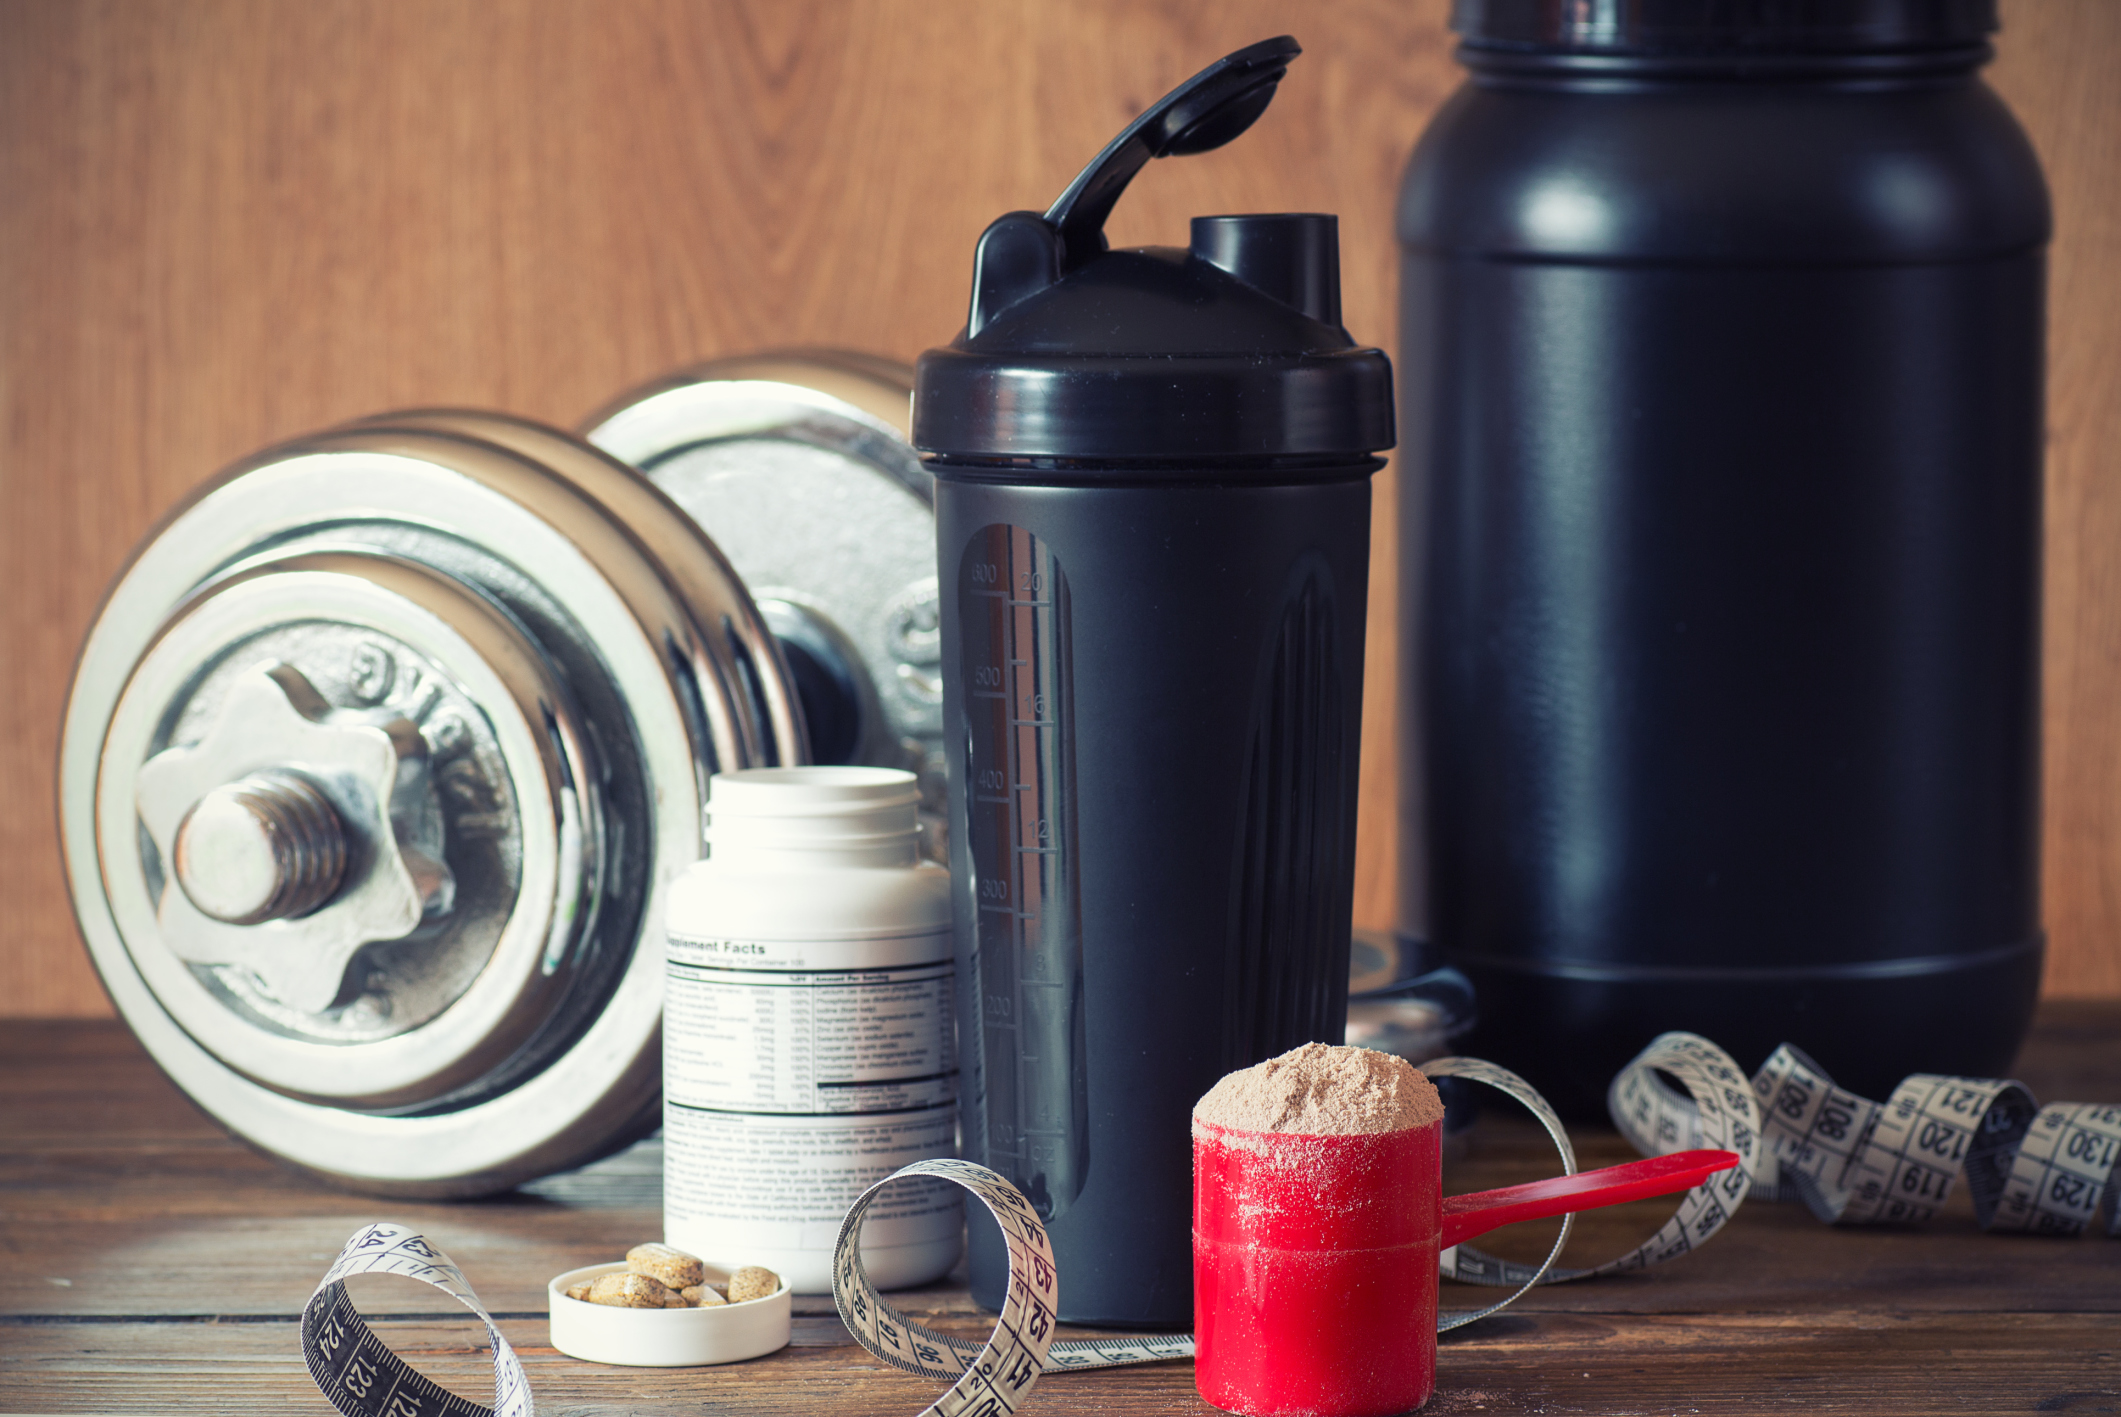 Do you need protein shakes to improve performance?